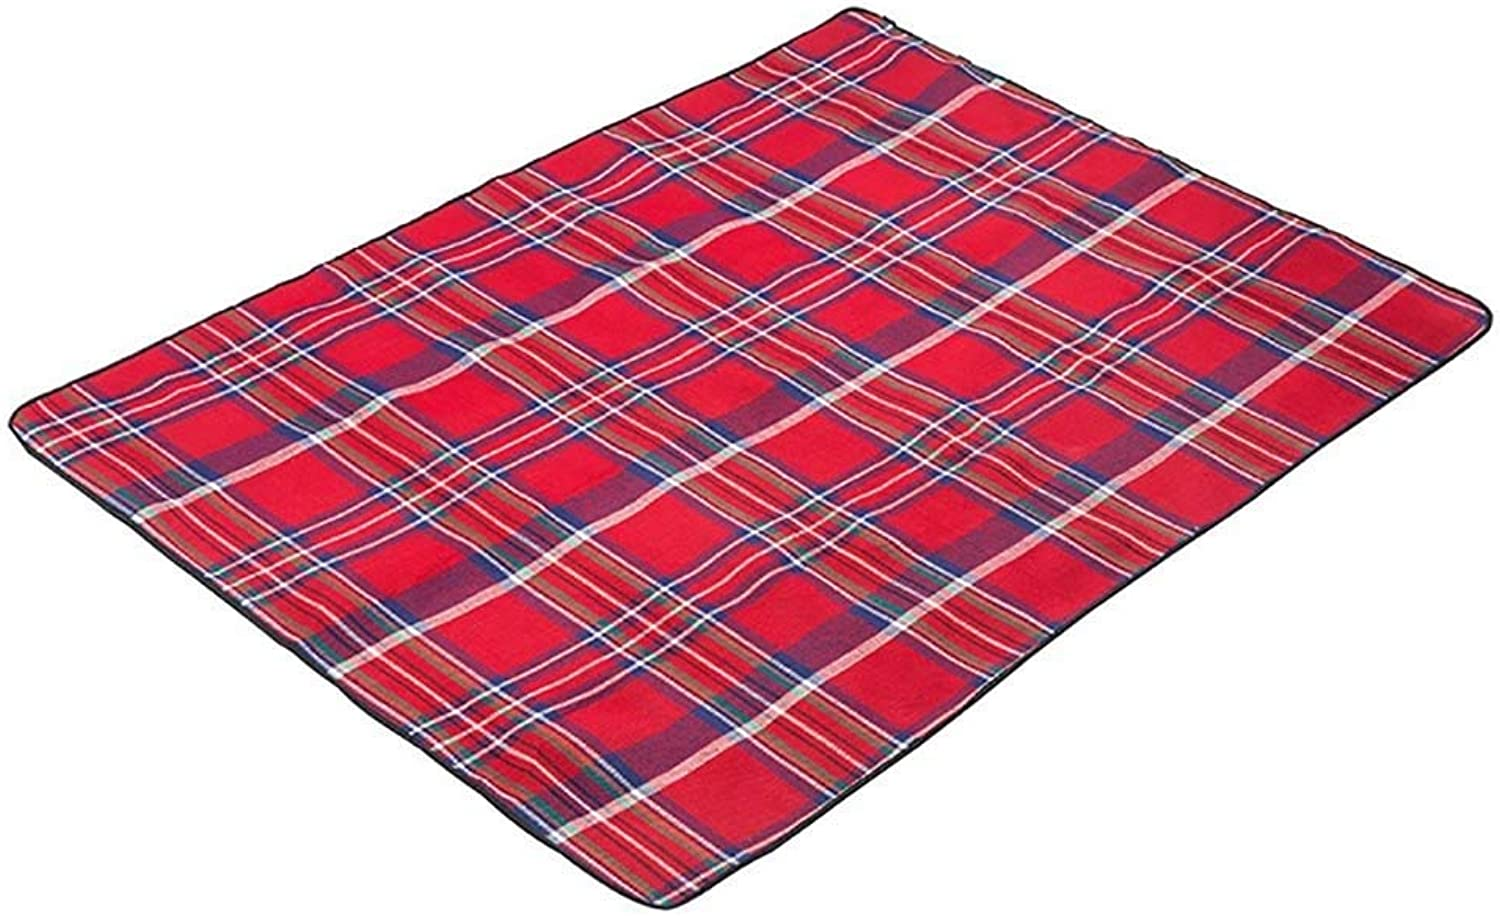 Picnic Mat, Portable Camping Travel Mat Barbecue Mat Outdoor Mat Portable Mat Suitable for Beach, Travel, Festival, Camping